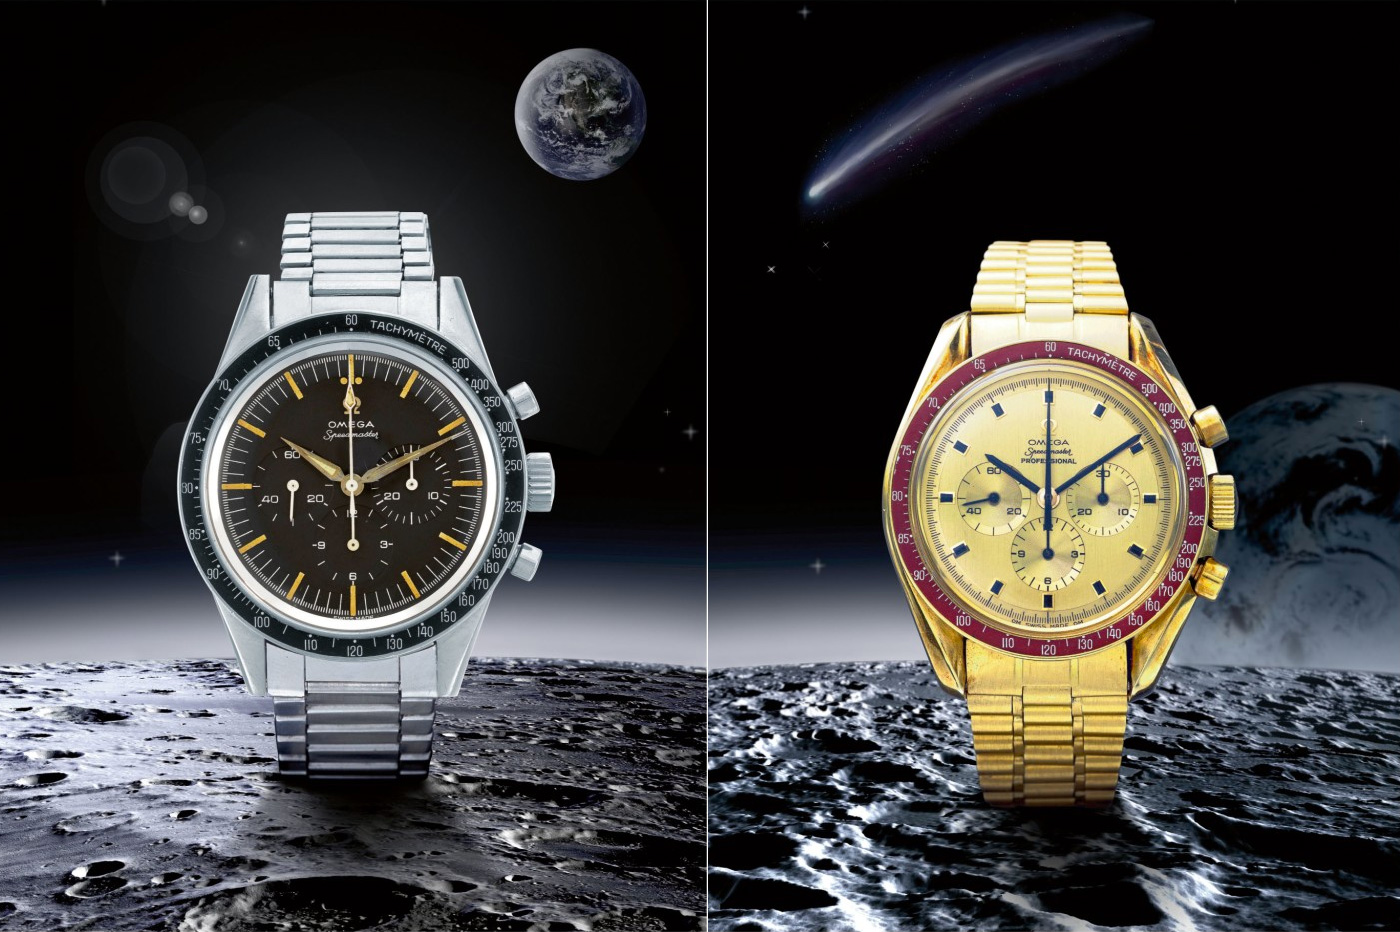 Sotheby's Celebrates 50th Anniversary of Apollo 11 with Rare Omega Speedmasters at werd.com